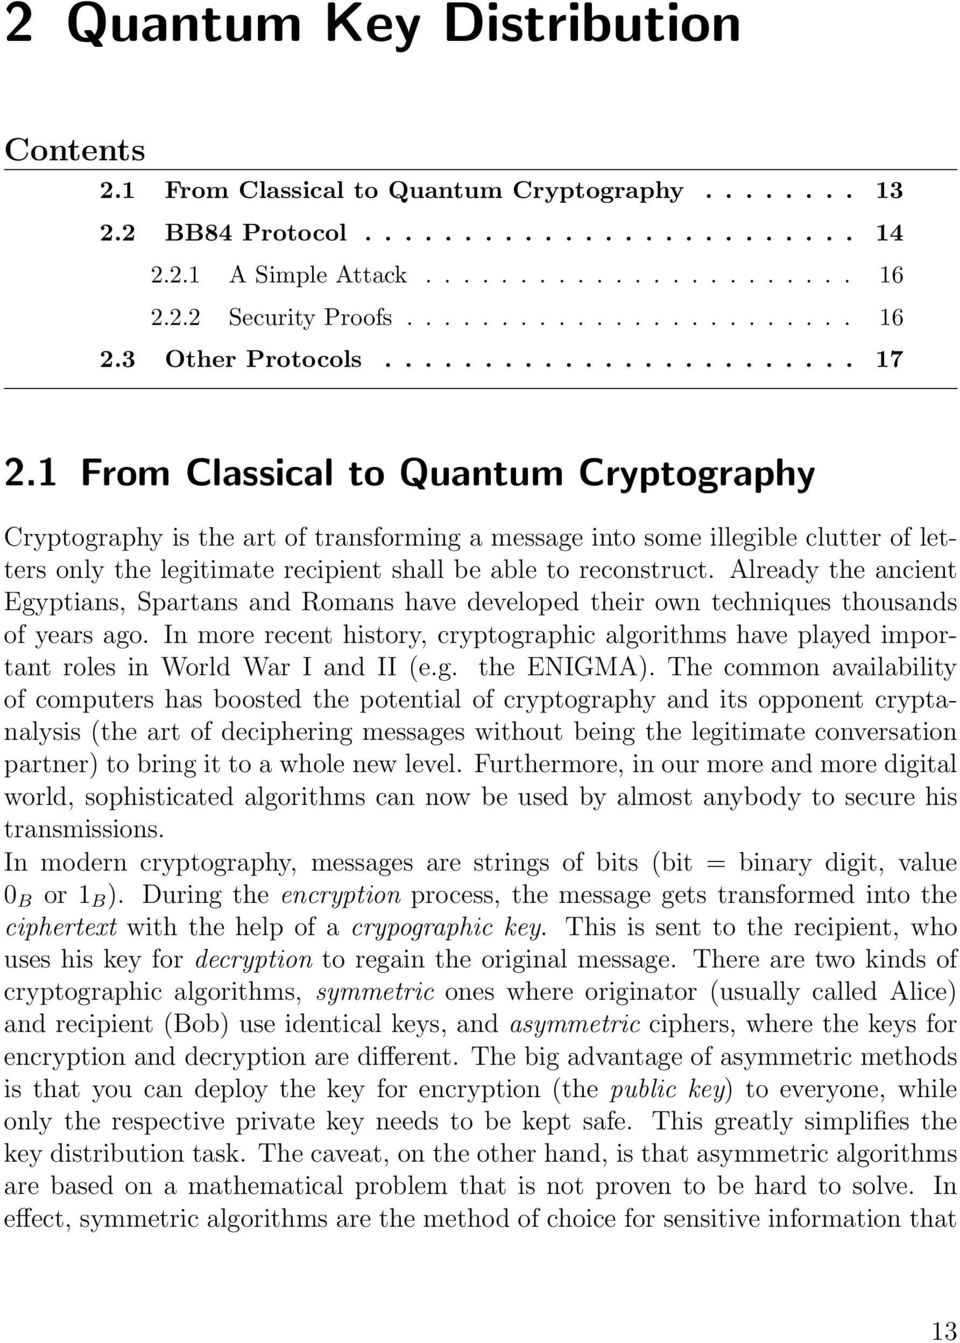 1 From Classical to Quantum Cryptography Cryptography is the art of transforming a message into some illegible clutter of letters only the legitimate recipient shall be able to reconstruct.